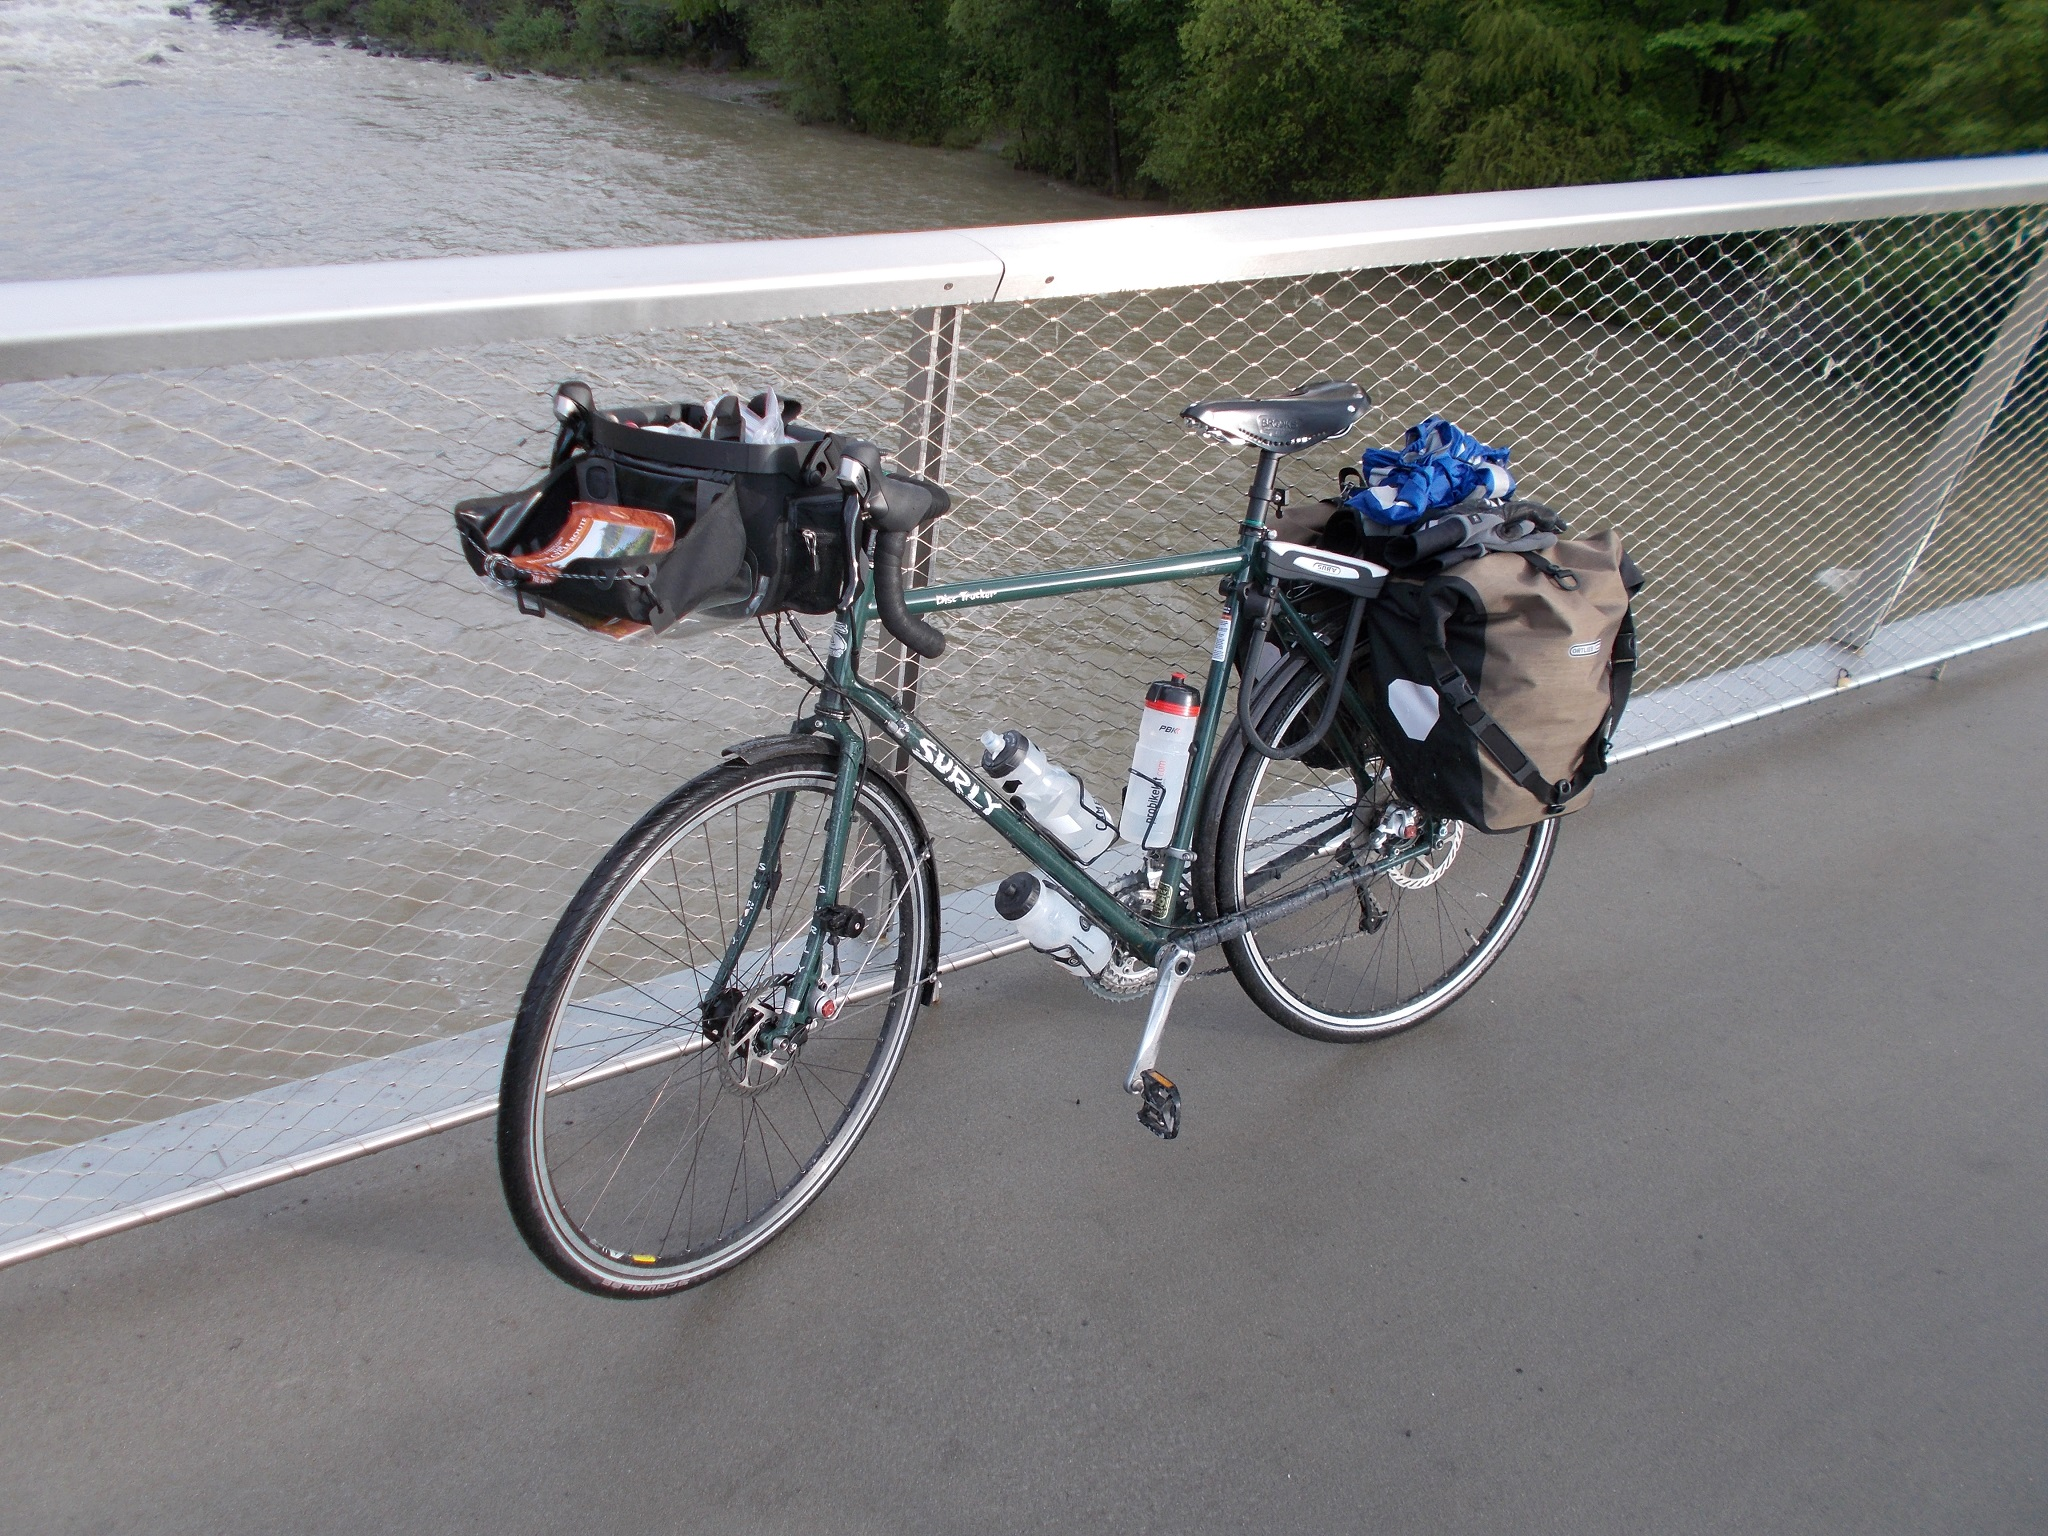 A green Surly Disc Trucker, slightly wet, drying out on a bridge.